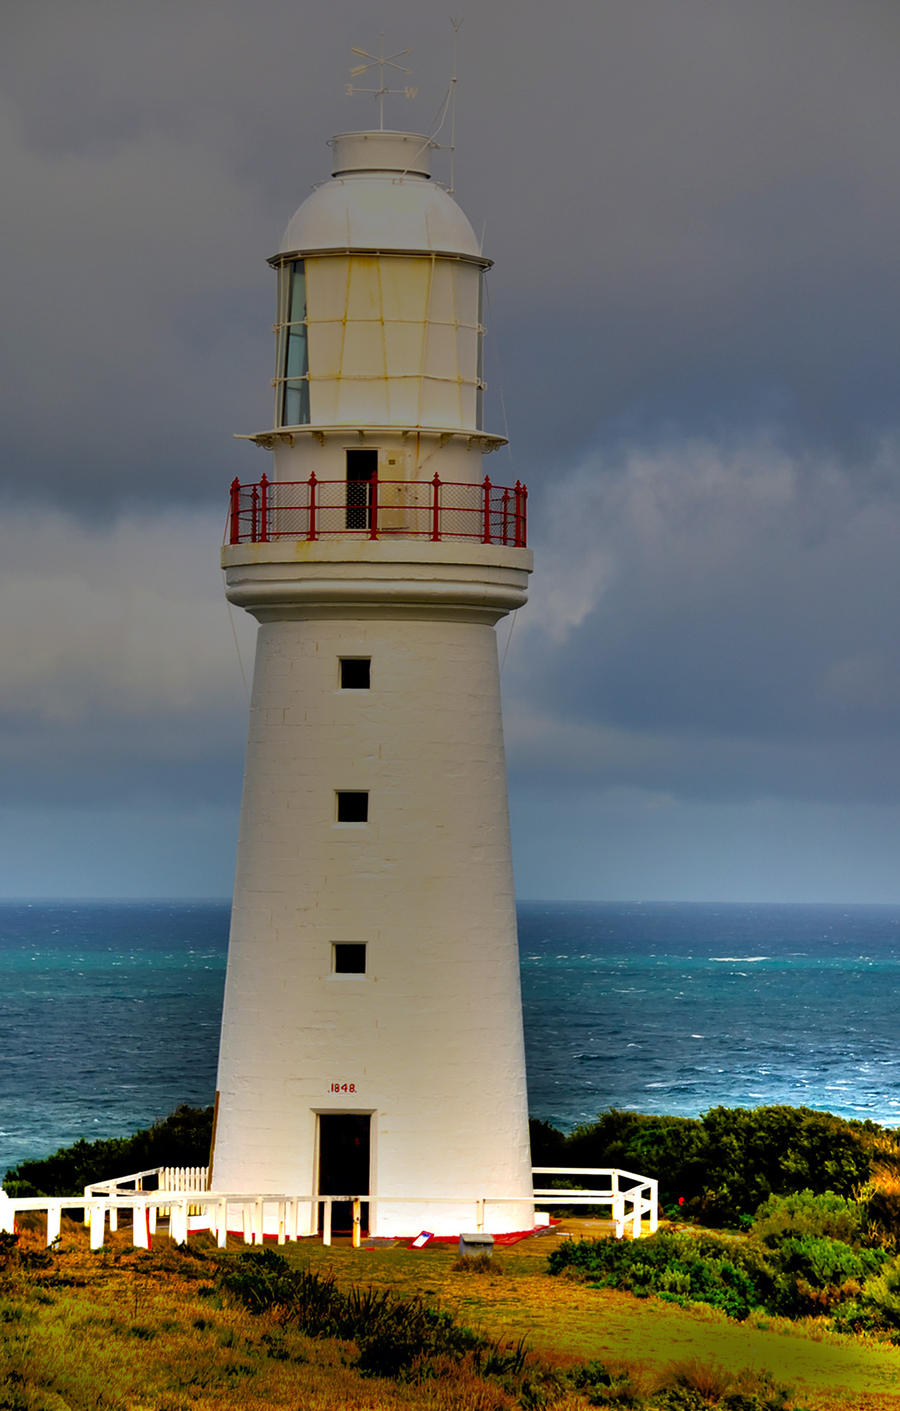 cape otway chat The cape otway light-station is on the great ocean road in the south of australia, a beautiful road along the sea :-) by uniqueesprit.